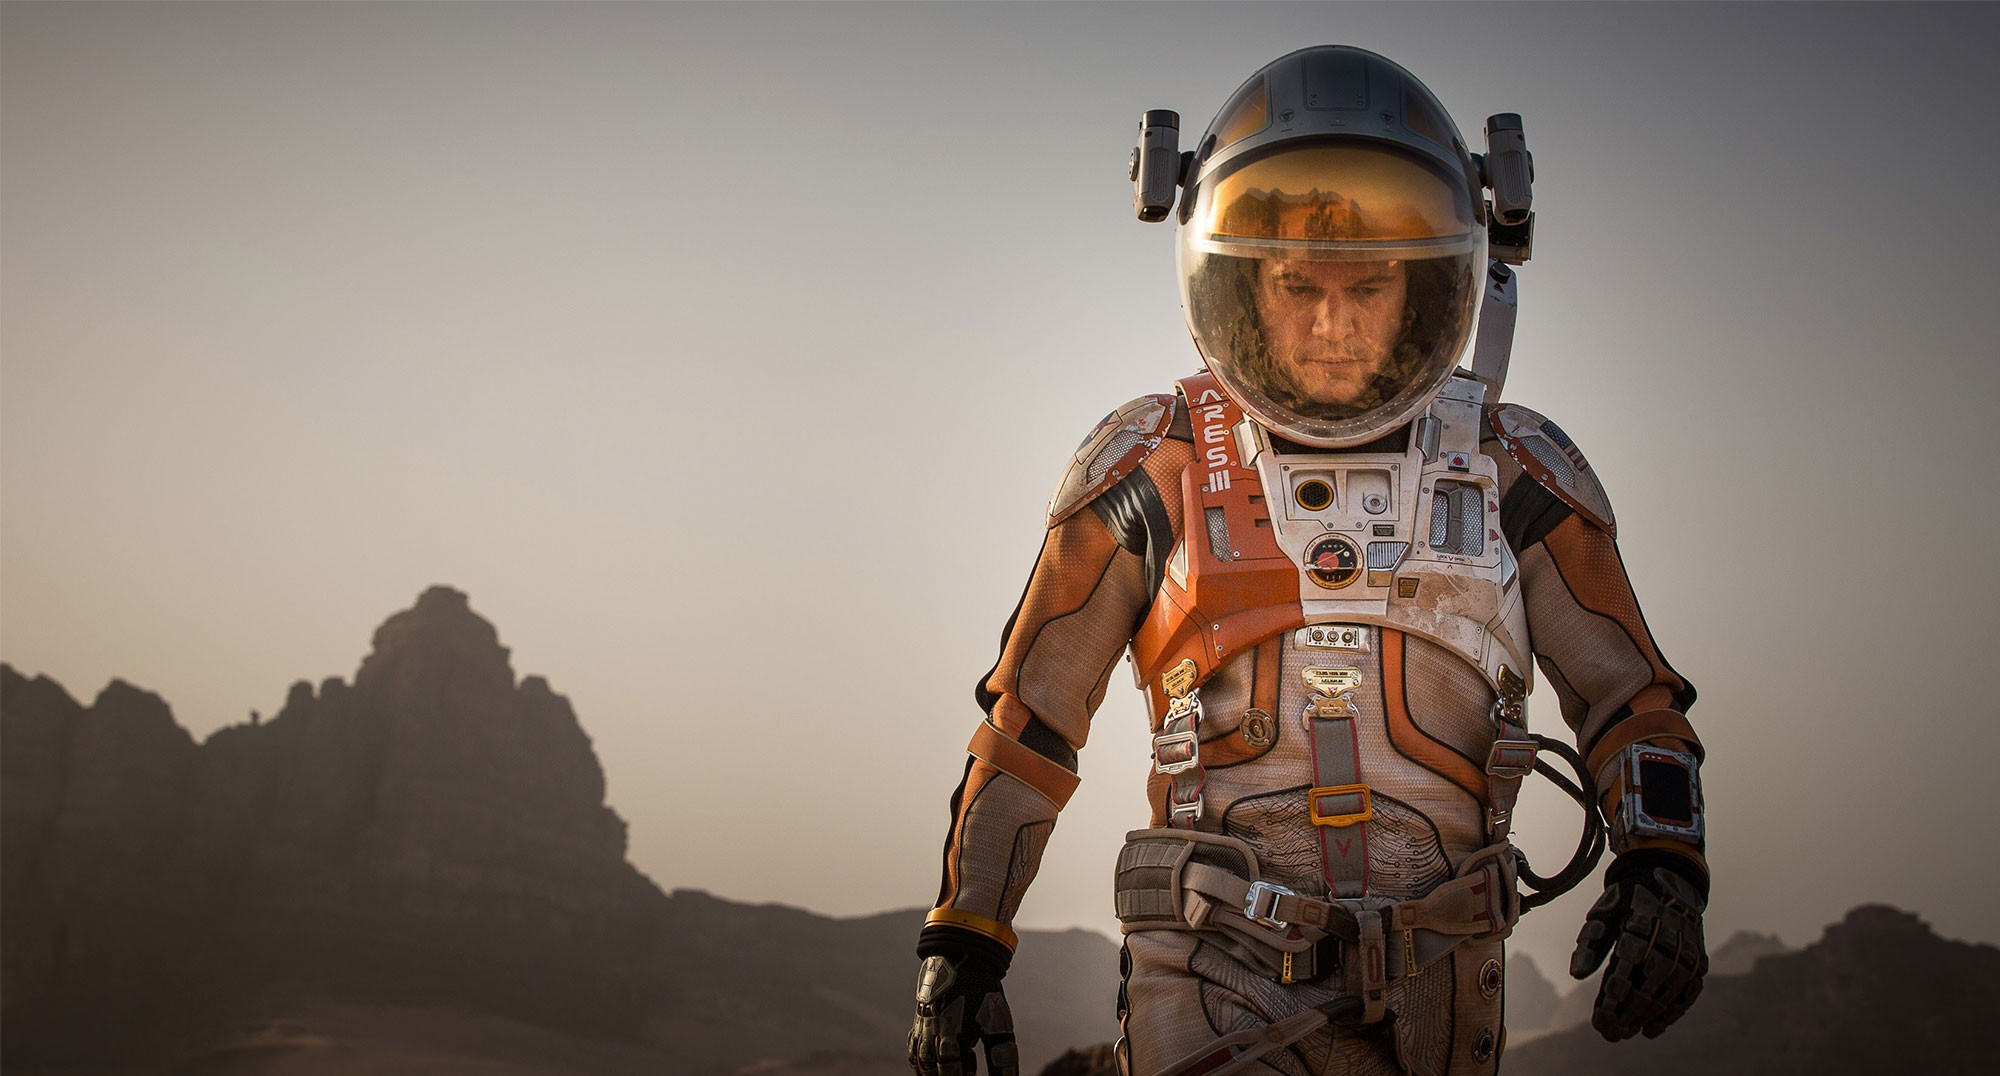 The-Martian-Movie-2015